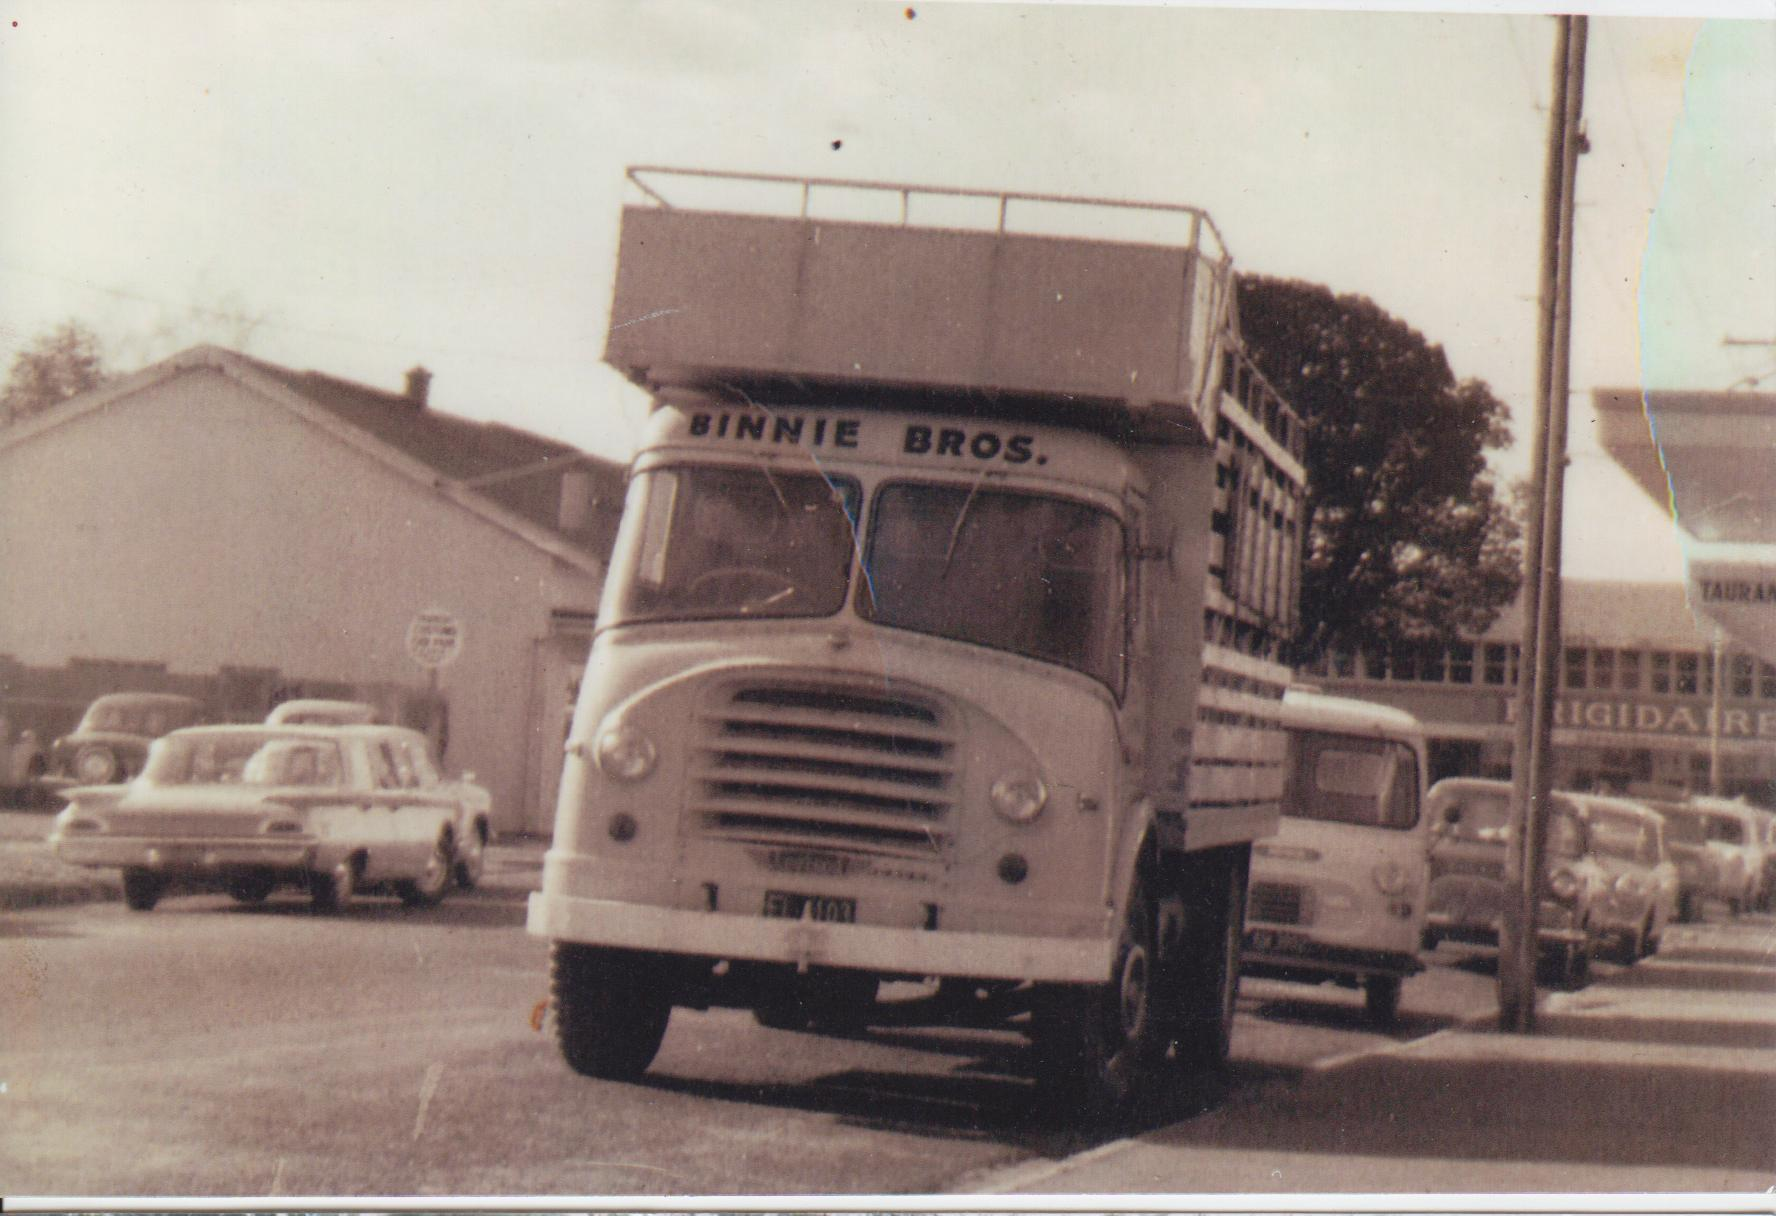 Leyland freighter photo - 1